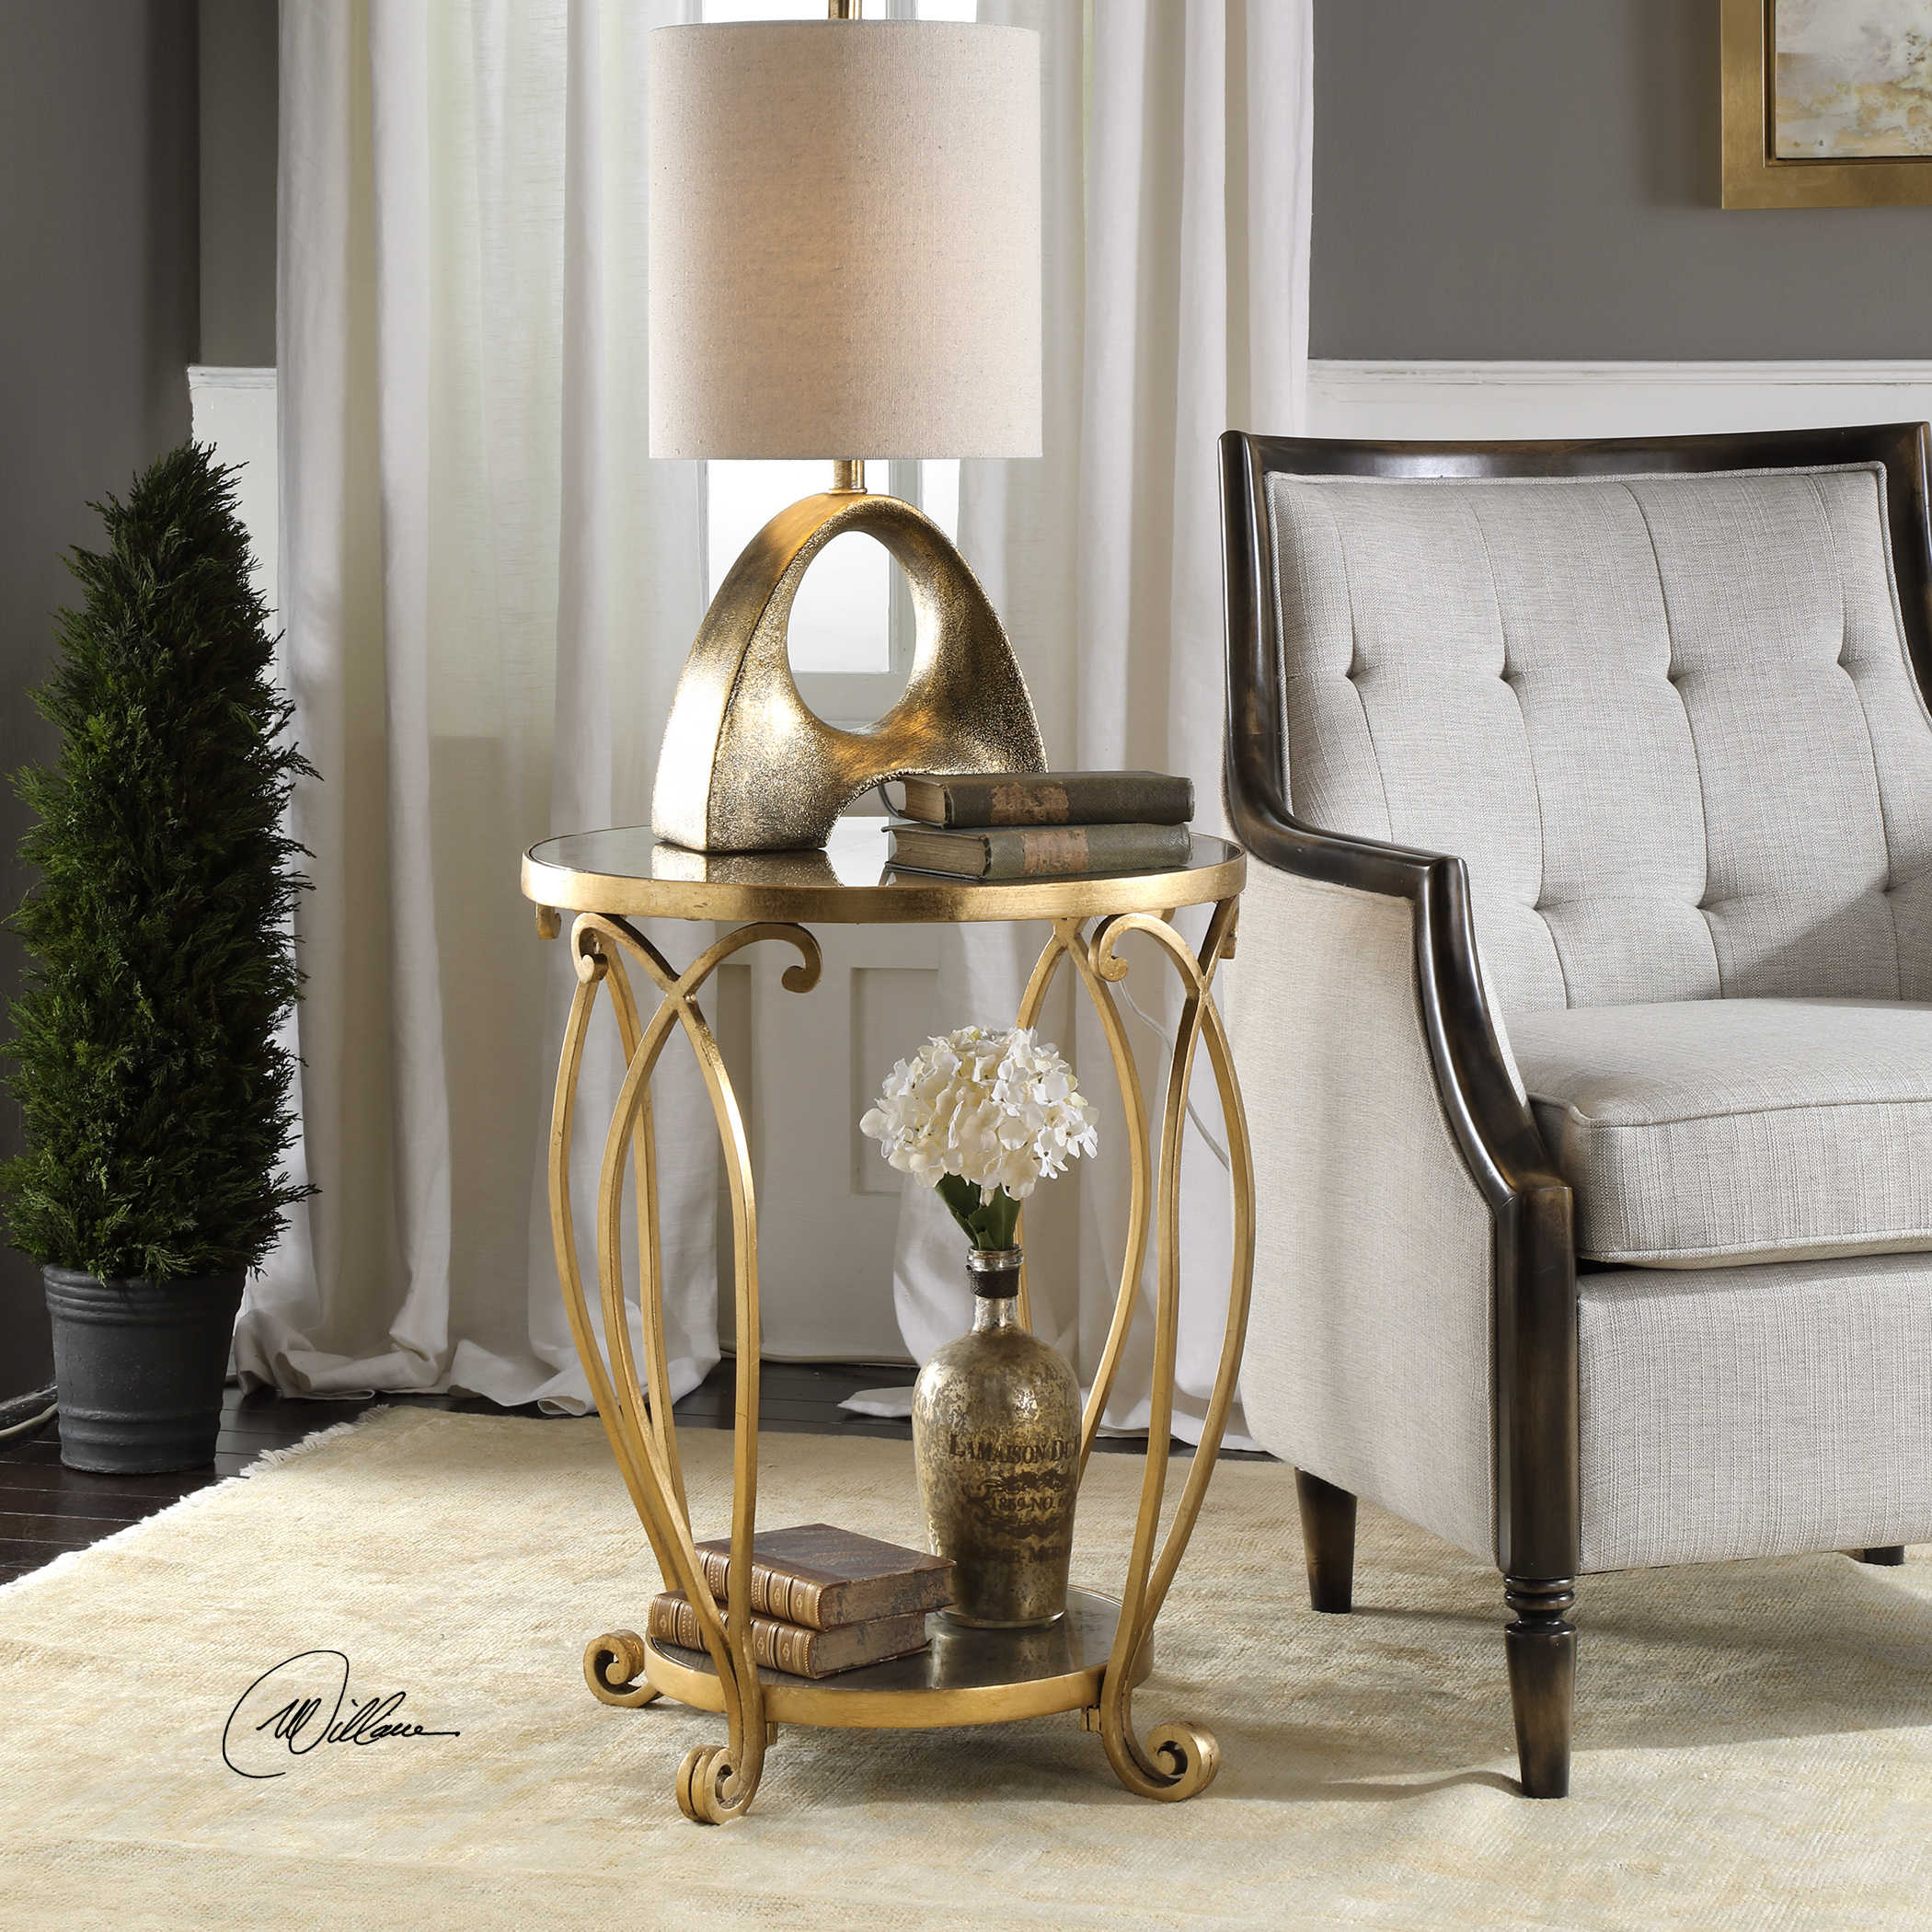 uttermost martella round gold accent table wood and metal end laton mirrored bamboo nesting tables entry console kohls floor lamps mosaic outdoor furniture glass iron side runner